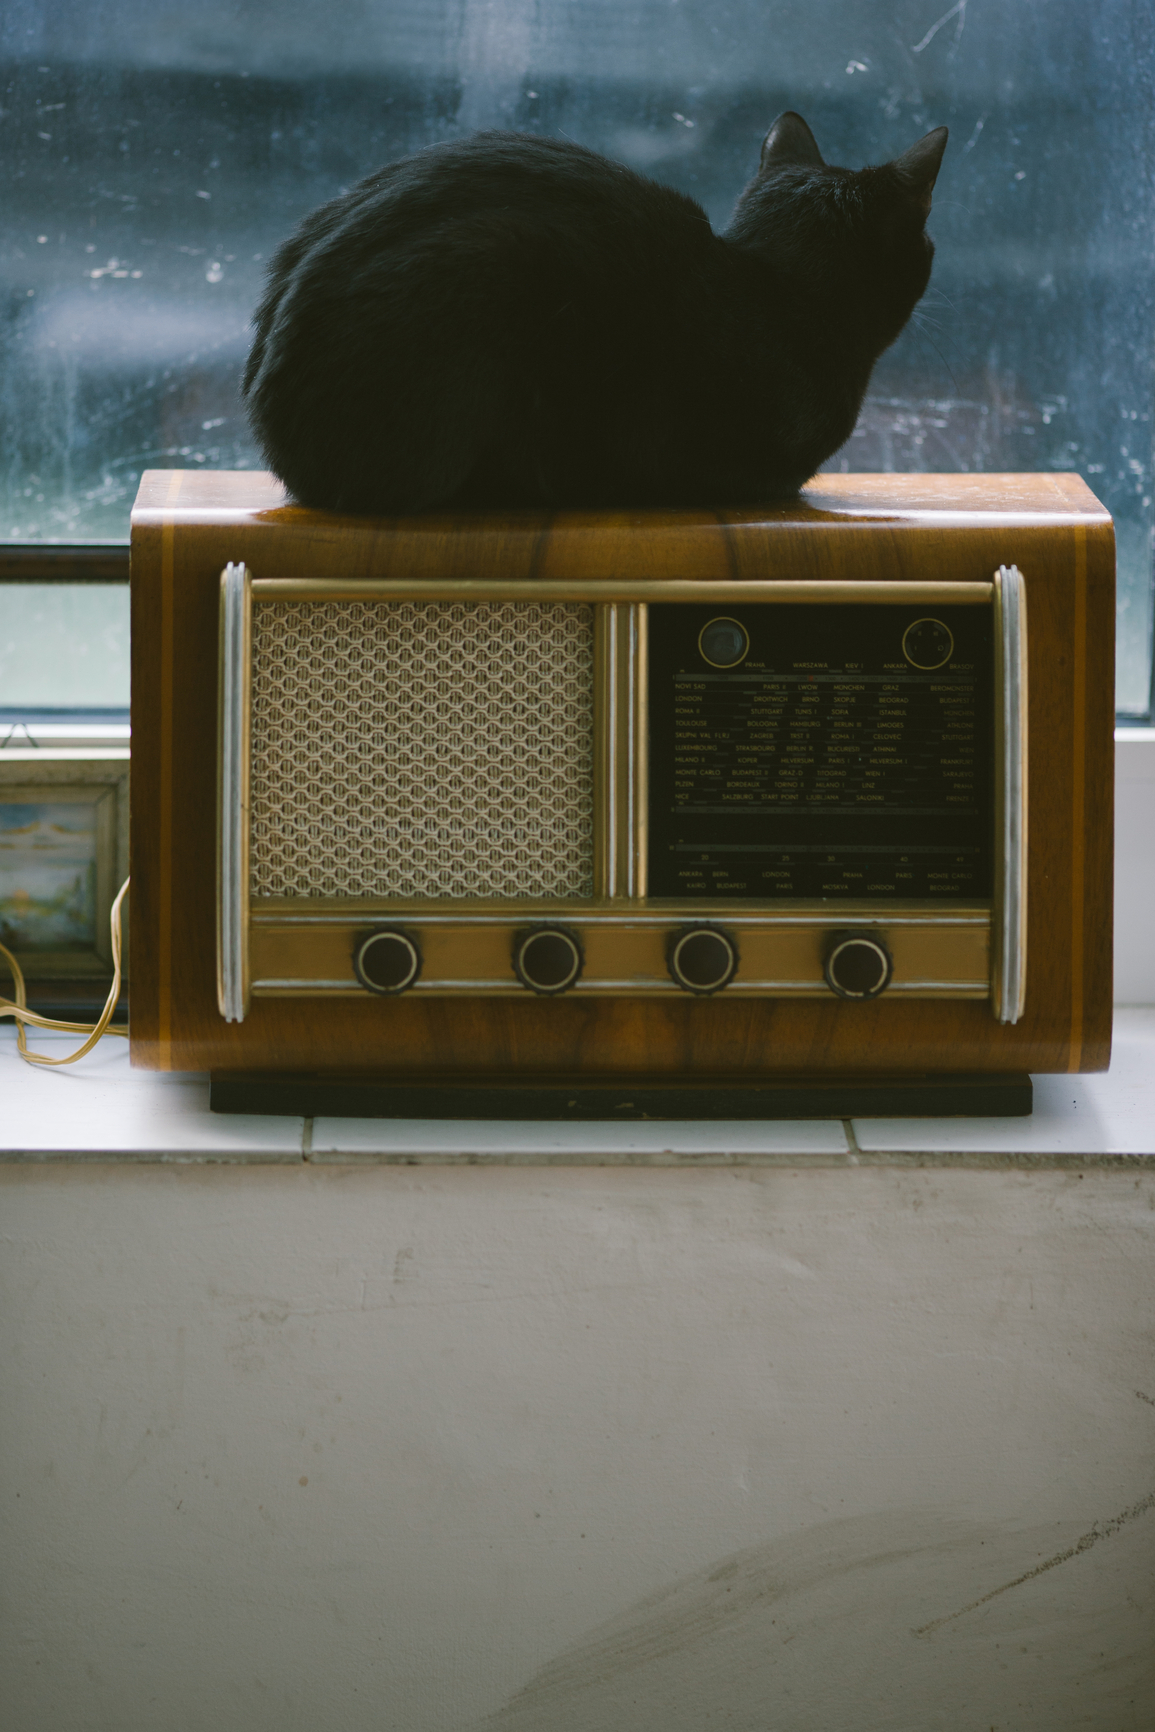 Black cat sitting on a retro radio